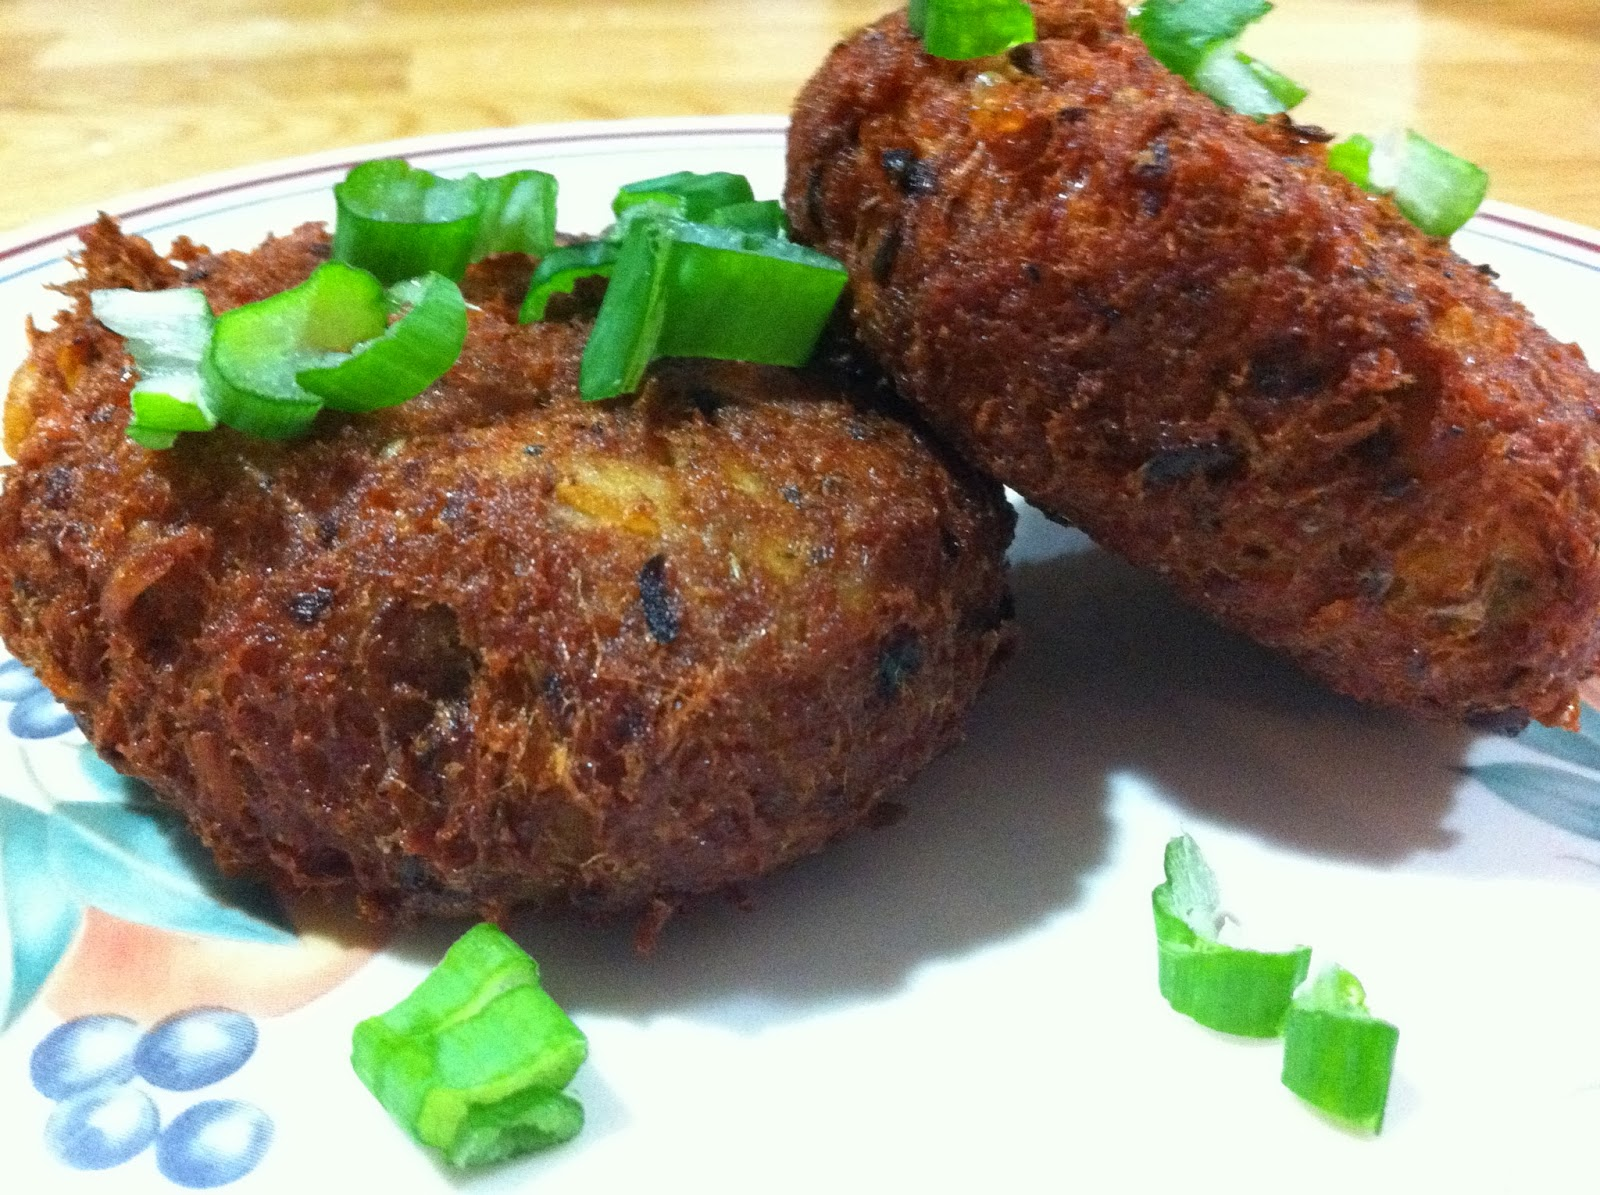 Tonight's Starter: Spicy Tuna Fish Cakes